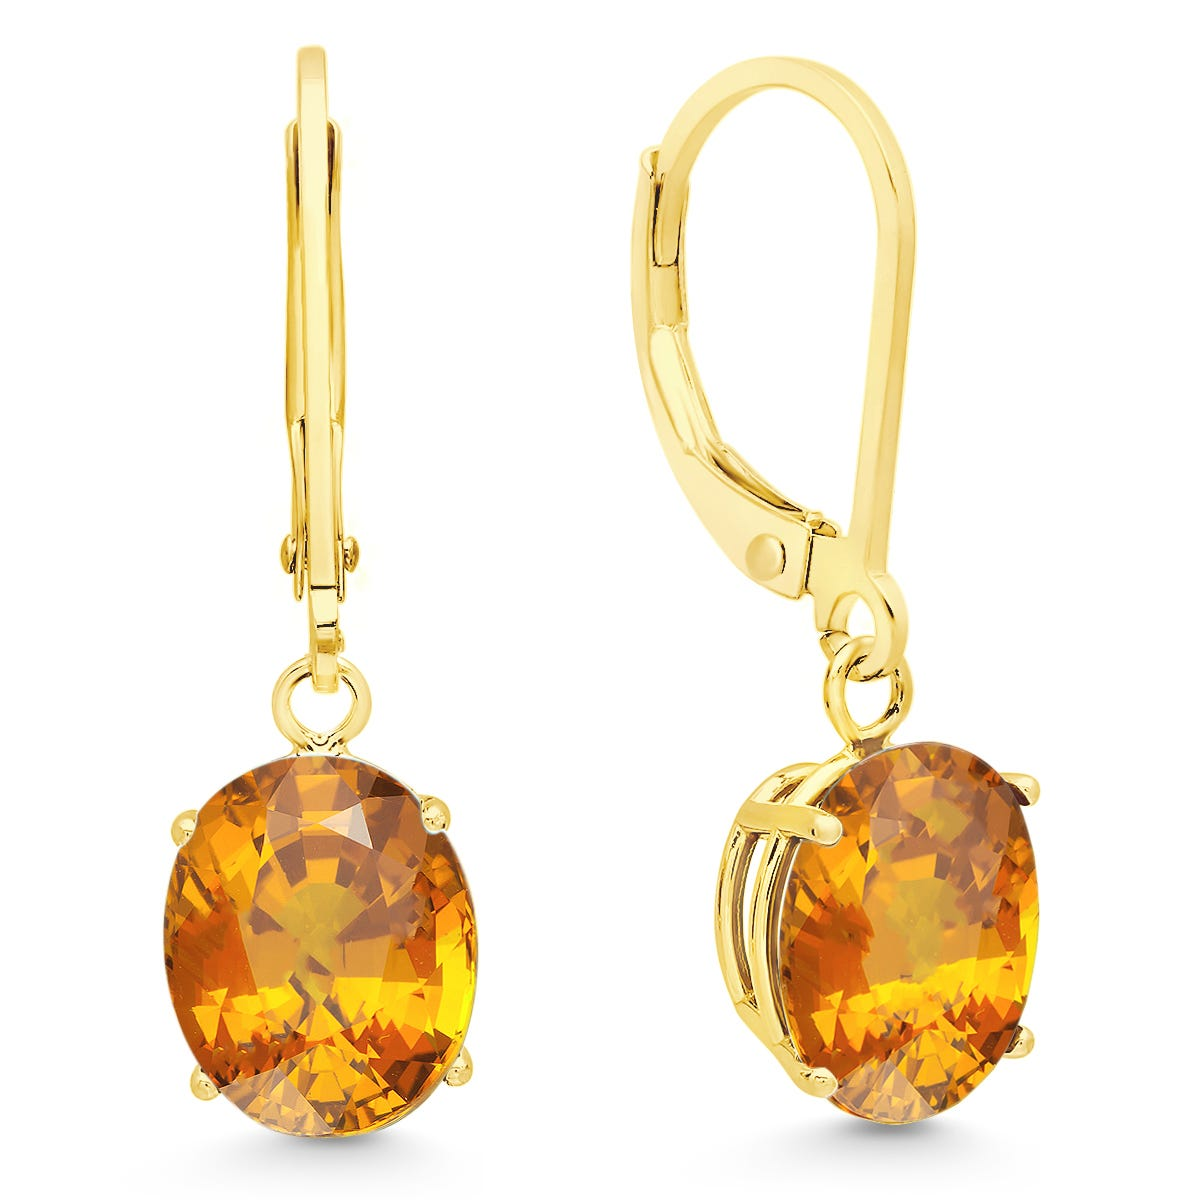 Citrine Oval Dangle Leverback Earrings in 14k Yellow Gold